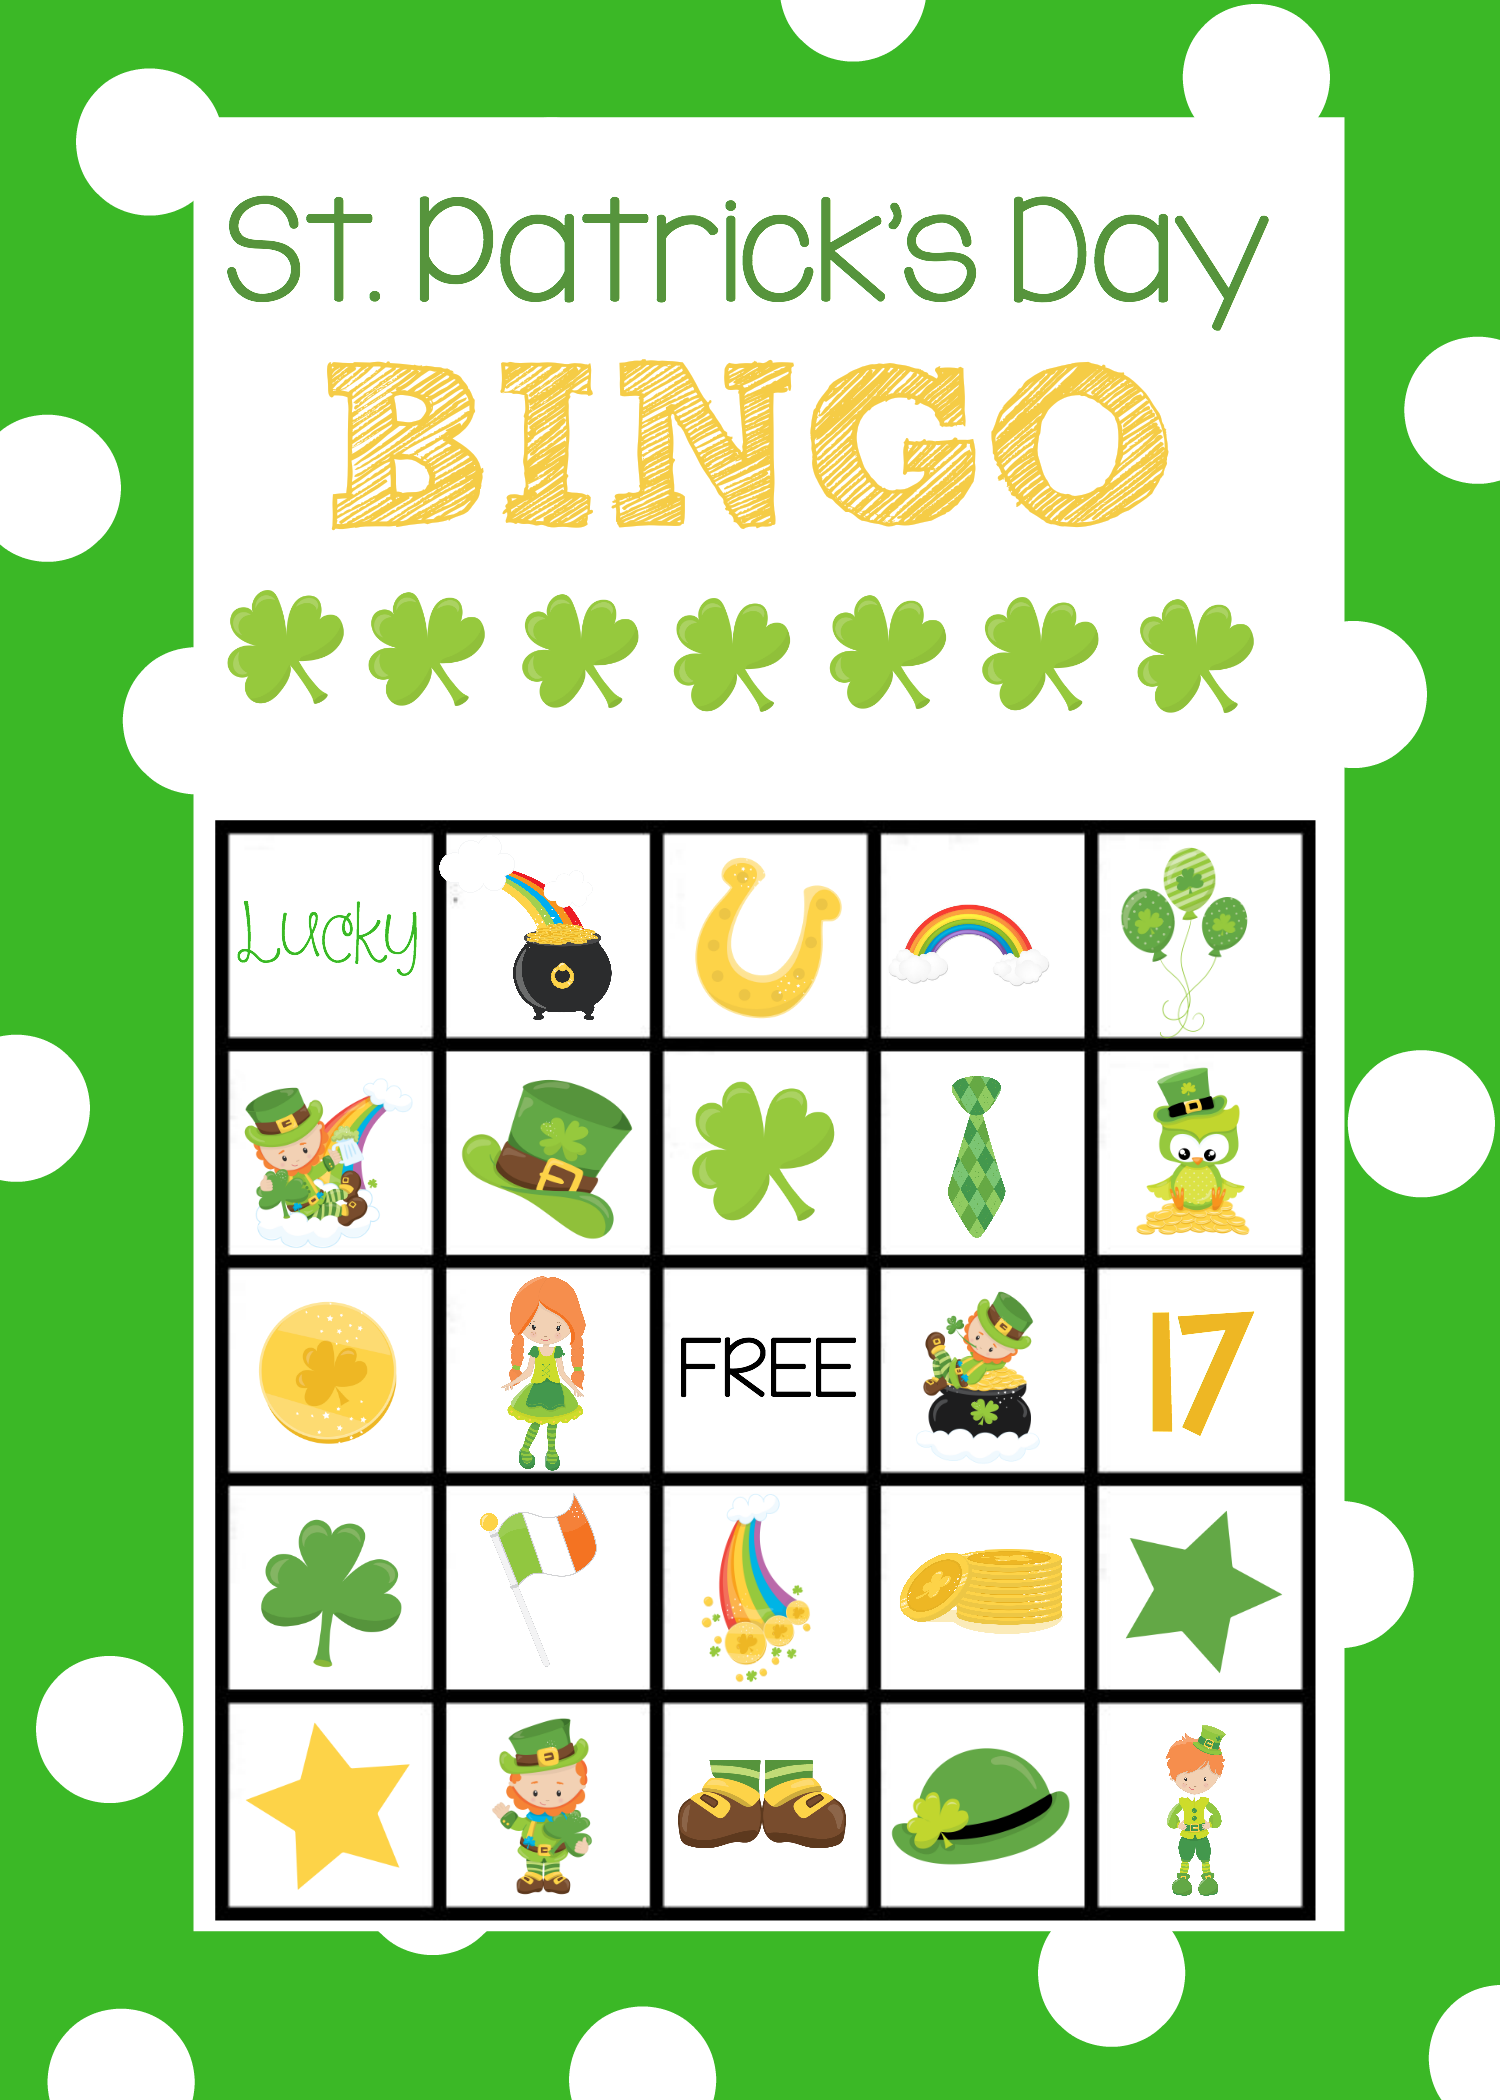 St. Patrick's Day Bingo Boards